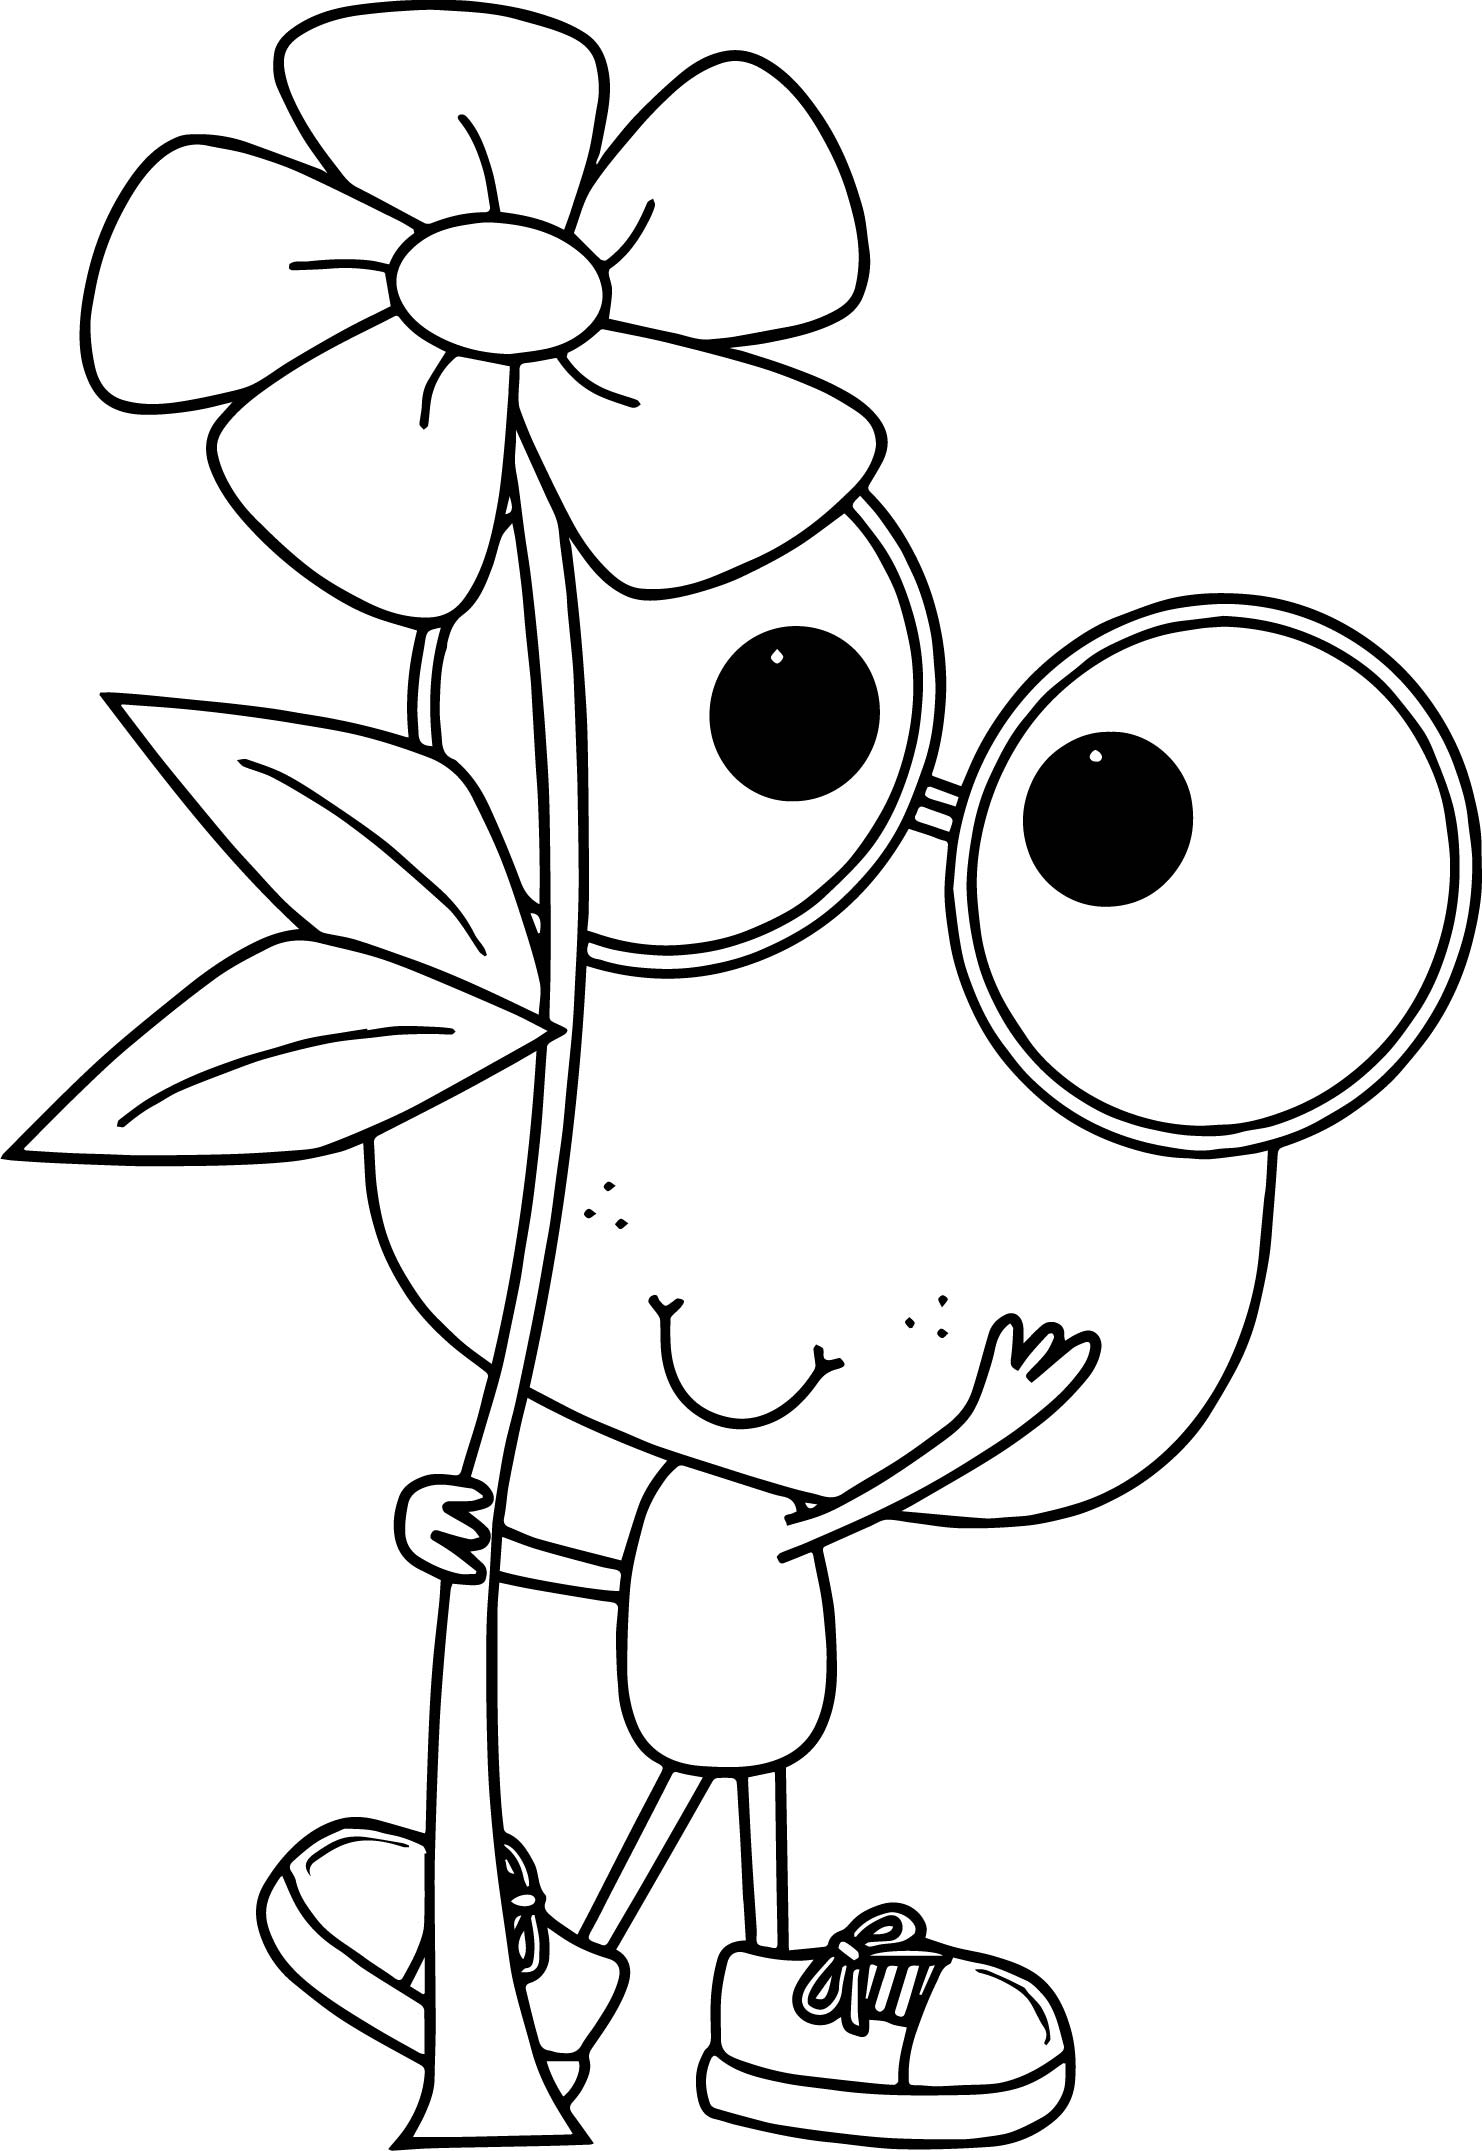 Frog Holding Flower Coloring Page